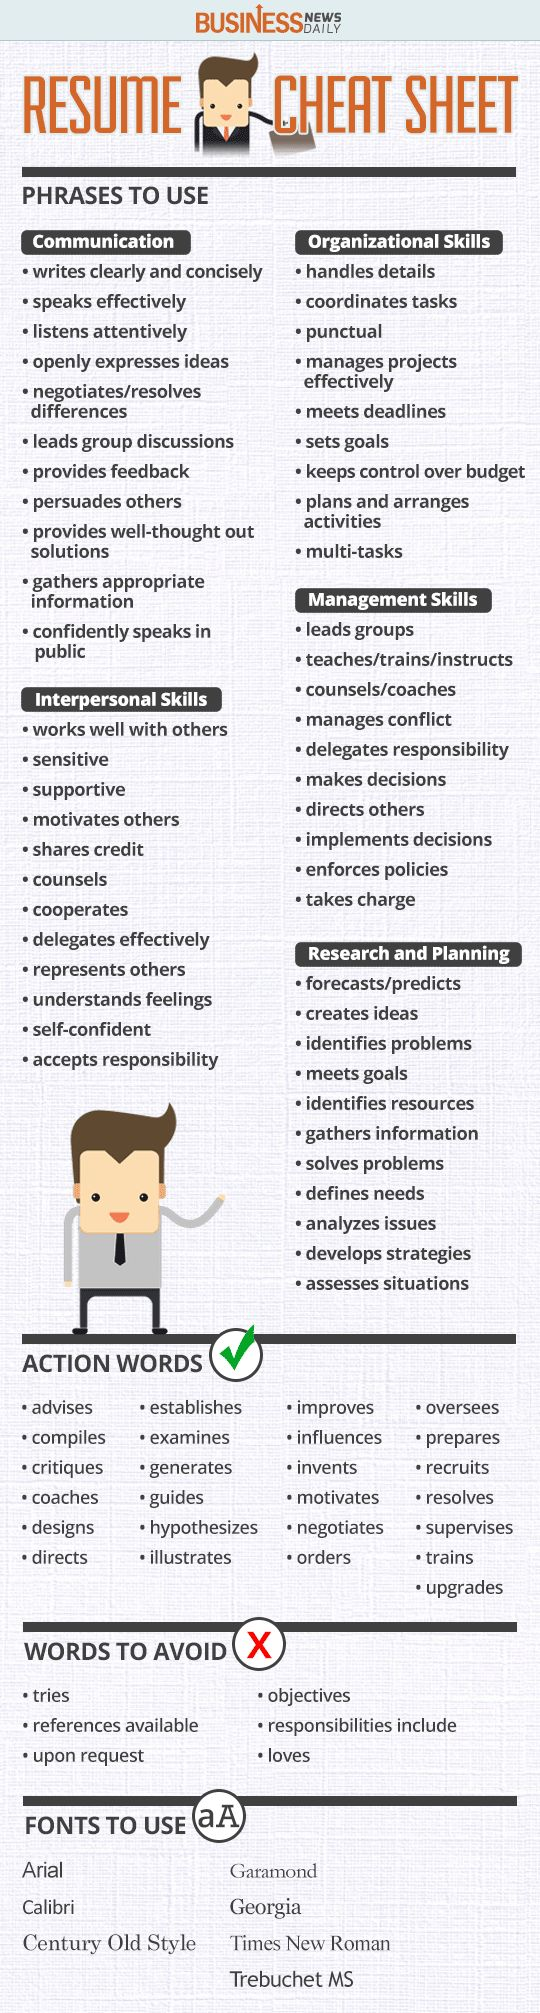 Opposenewapstandardsus  Seductive  Ideas About Resume On Pinterest  Cv Format Resume Cv And  With Fair Resume Cheat Sheet Infographic Andrews Almost Done With A Complete Unit On Employment Which With Delightful Online Resume Free Also Sample Call Center Resume In Addition Federal Job Resume Template And Resume For Cna Examples As Well As It Director Resume Samples Additionally Drafter Resume From Pinterestcom With Opposenewapstandardsus  Fair  Ideas About Resume On Pinterest  Cv Format Resume Cv And  With Delightful Resume Cheat Sheet Infographic Andrews Almost Done With A Complete Unit On Employment Which And Seductive Online Resume Free Also Sample Call Center Resume In Addition Federal Job Resume Template From Pinterestcom